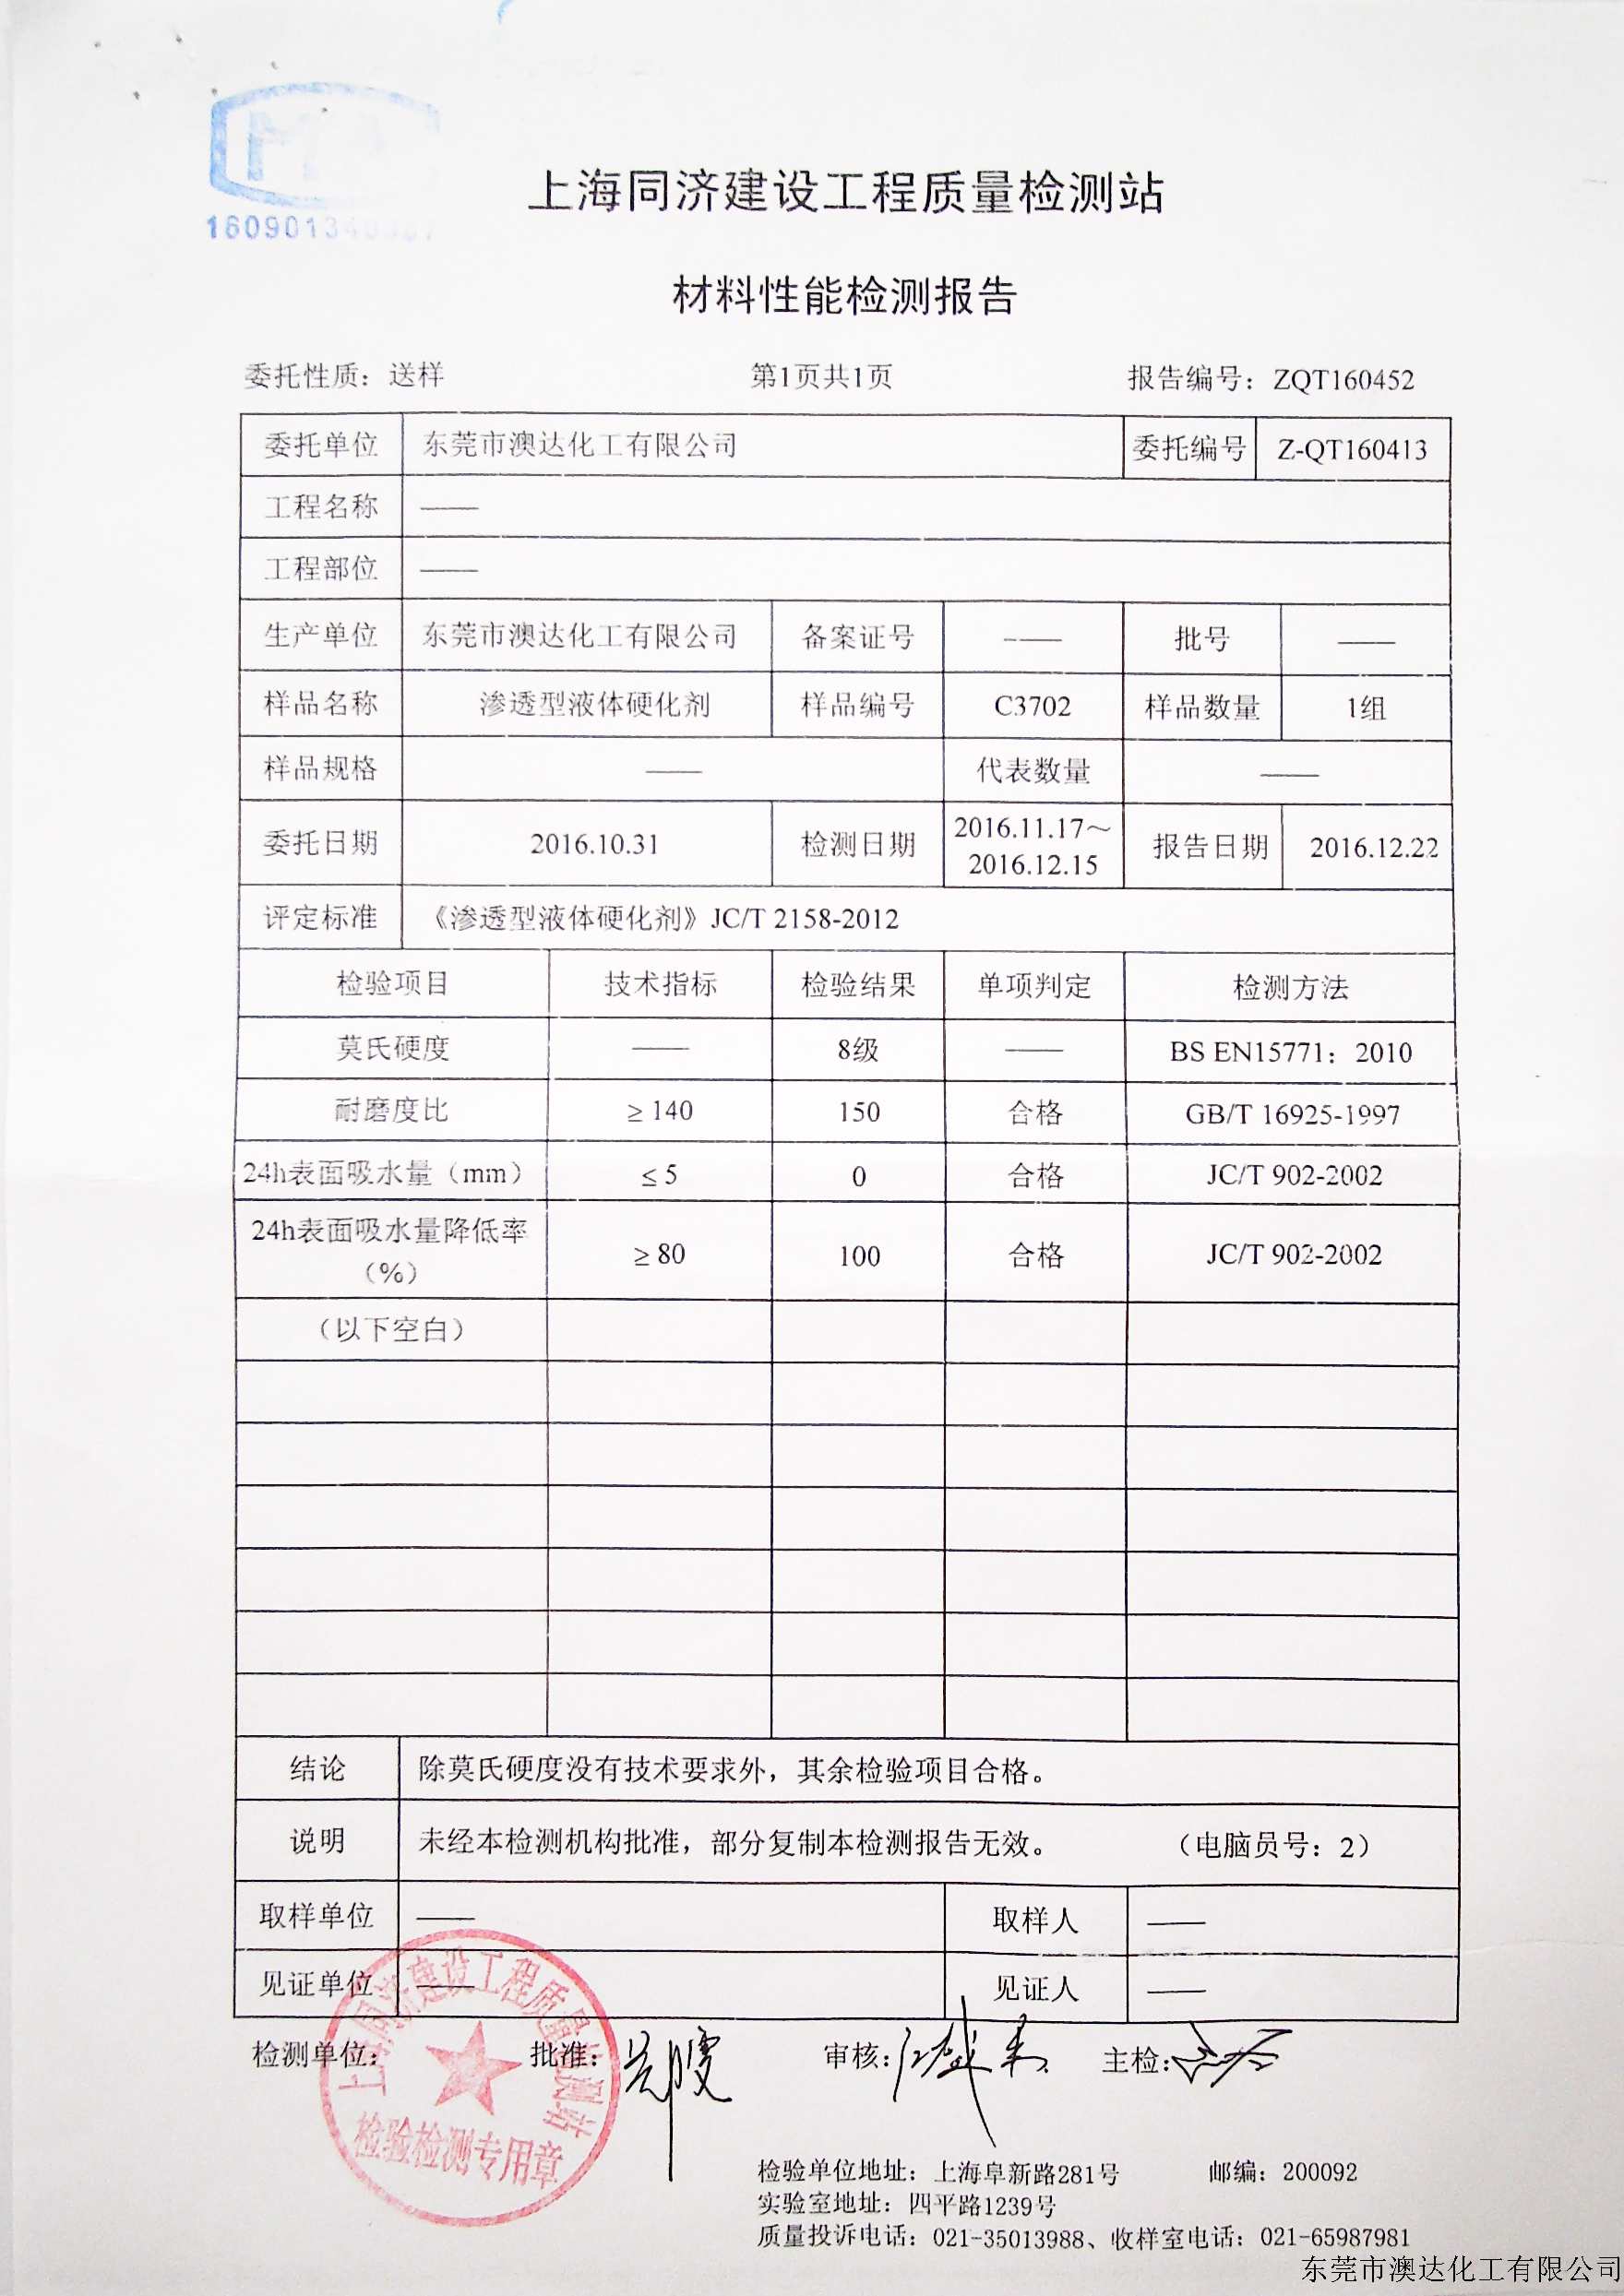 Concrete Densifier official report from Shanghai Lab.